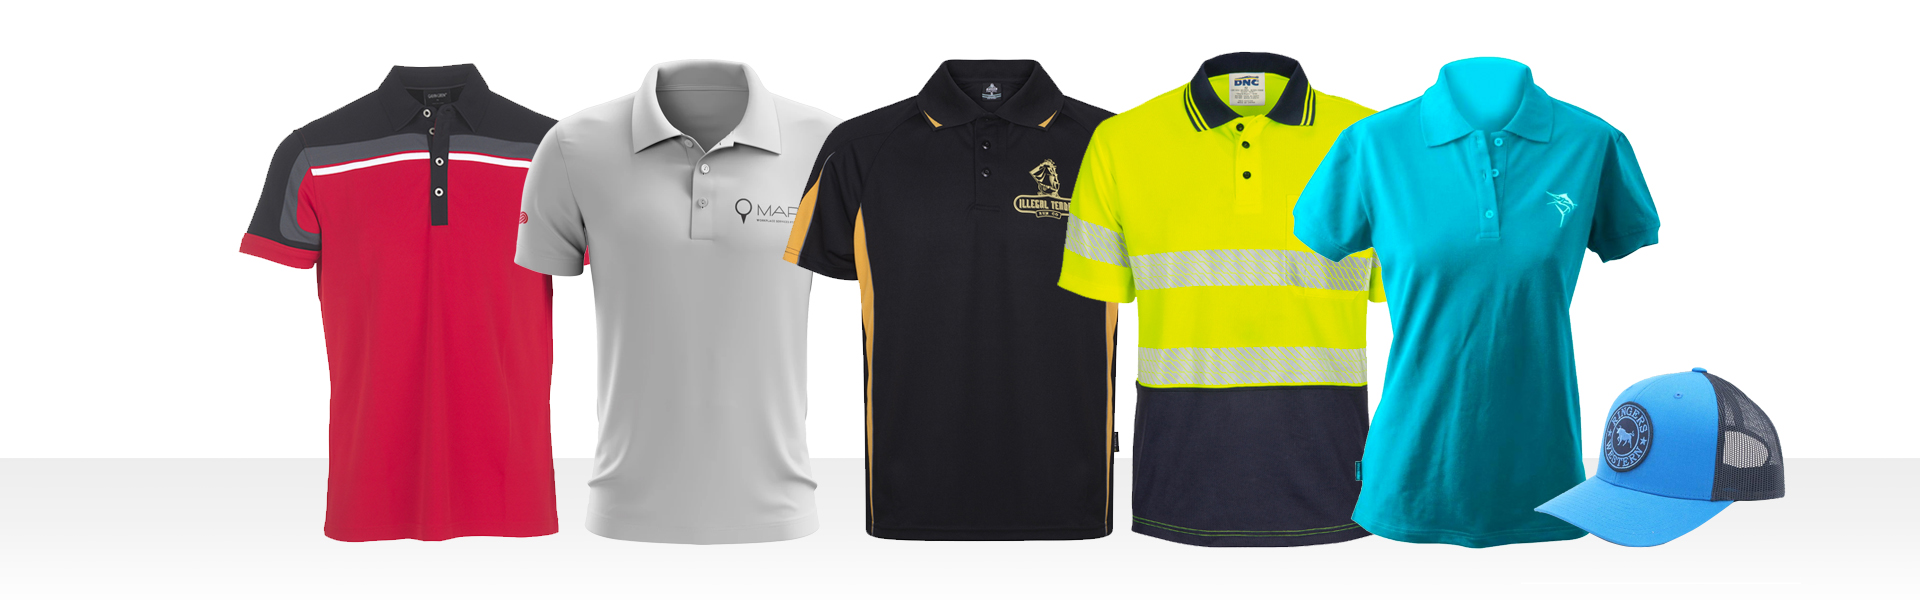 Branded Corporate Apparel